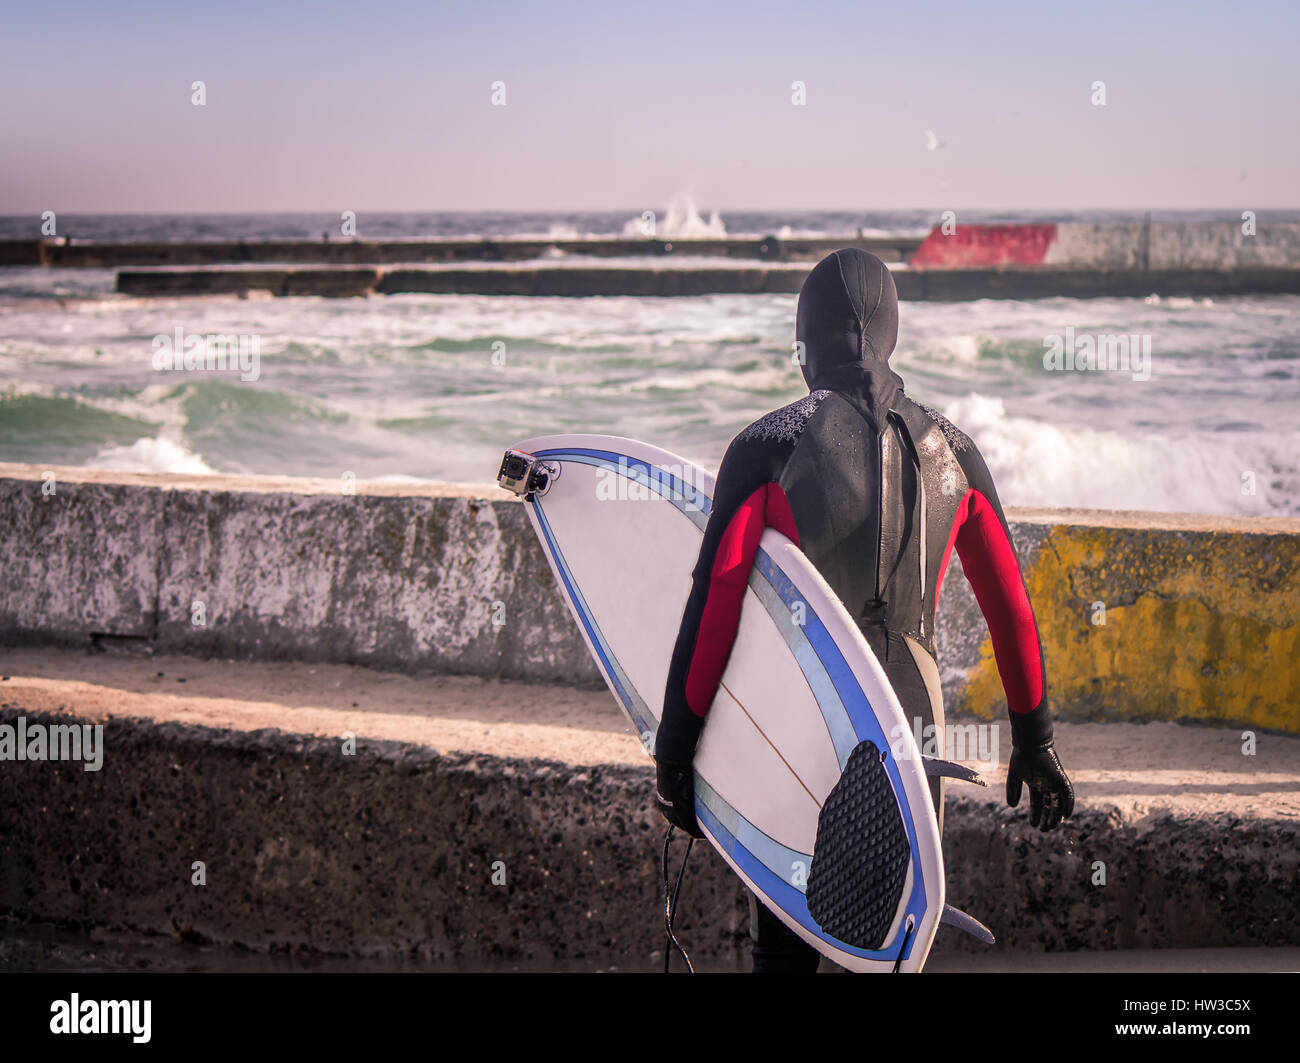 Surfer on the pier walks  into water wearing a wetsuit in winter. Cold surfing. Wave splash. waterproof suit Stock Photo